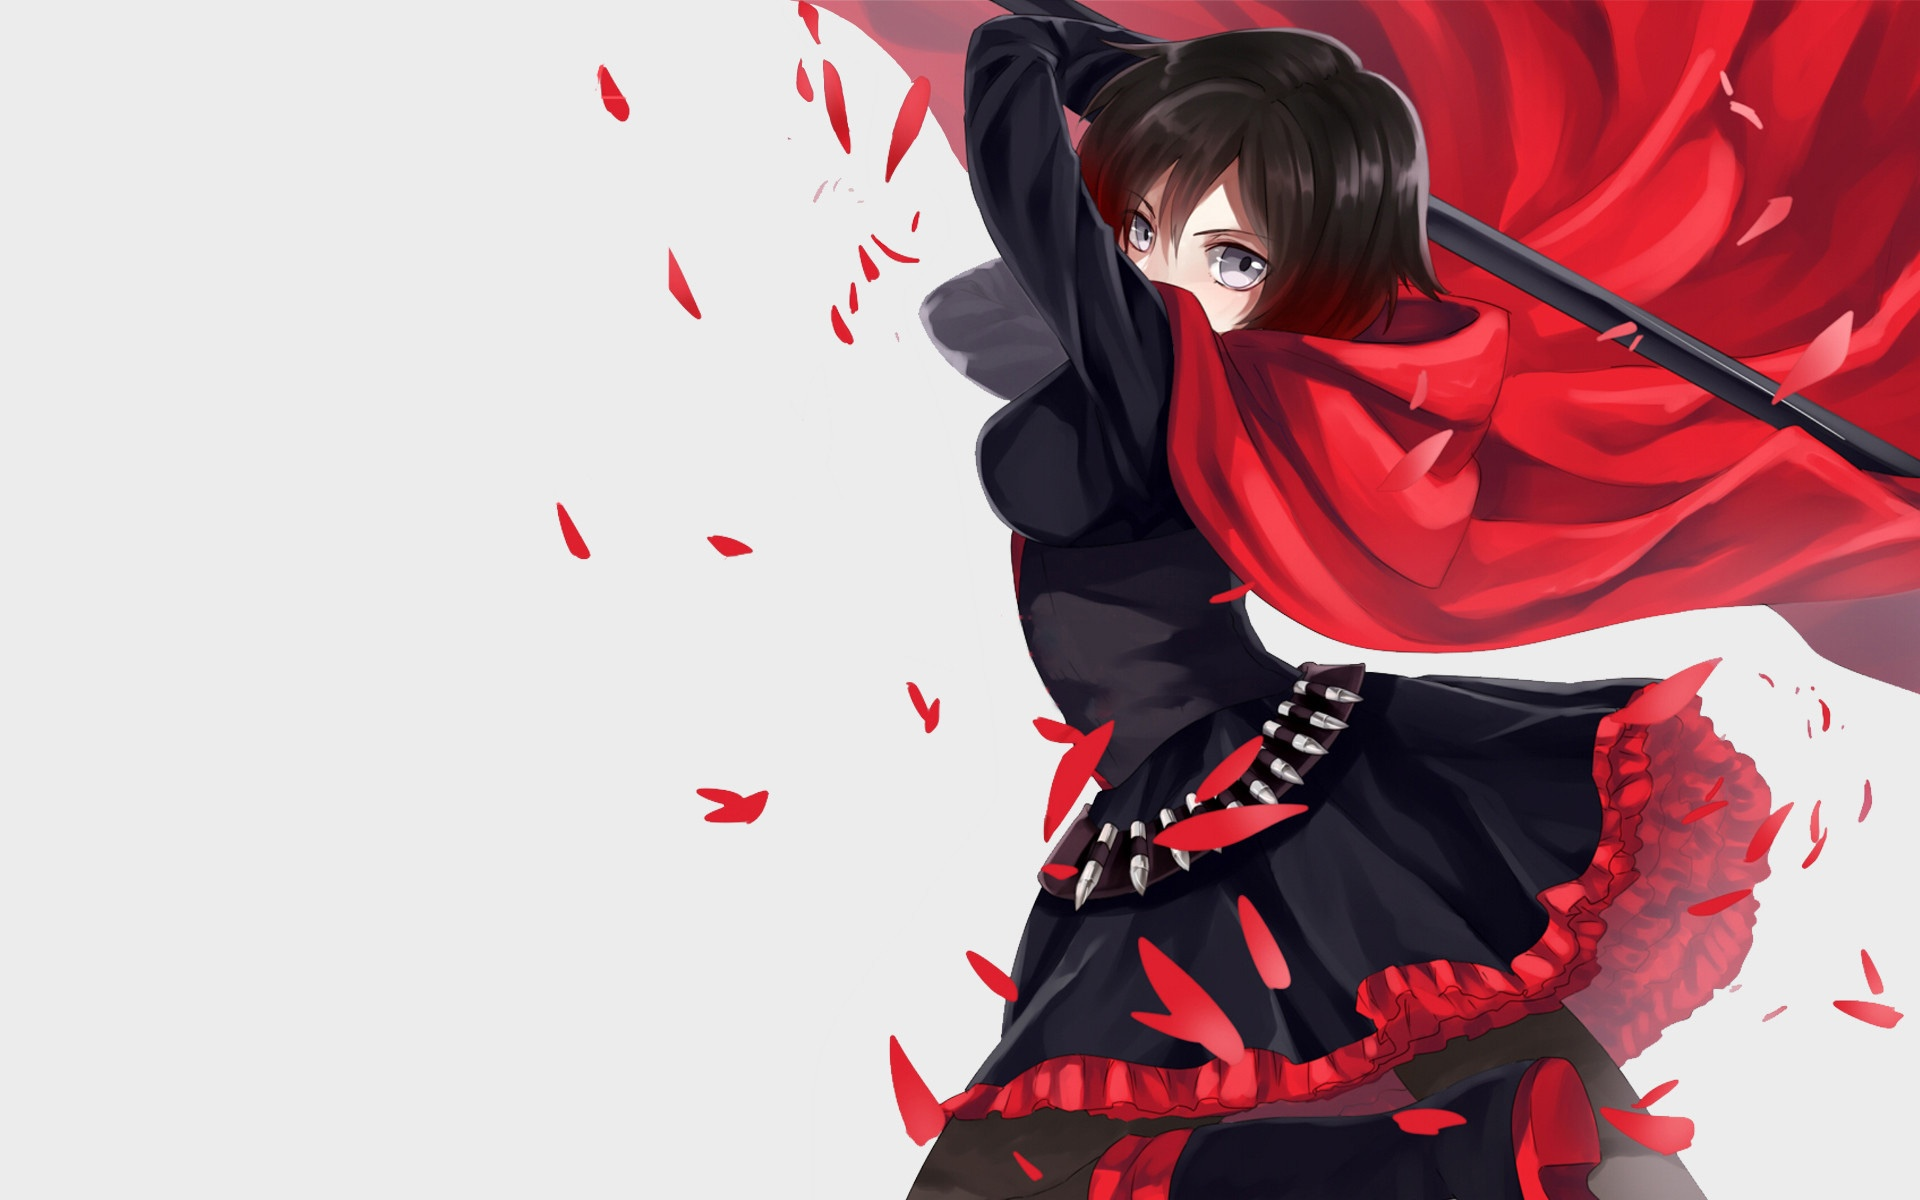 Ruby Rose RWBY Wallpapers In Jpg Format For Free Download